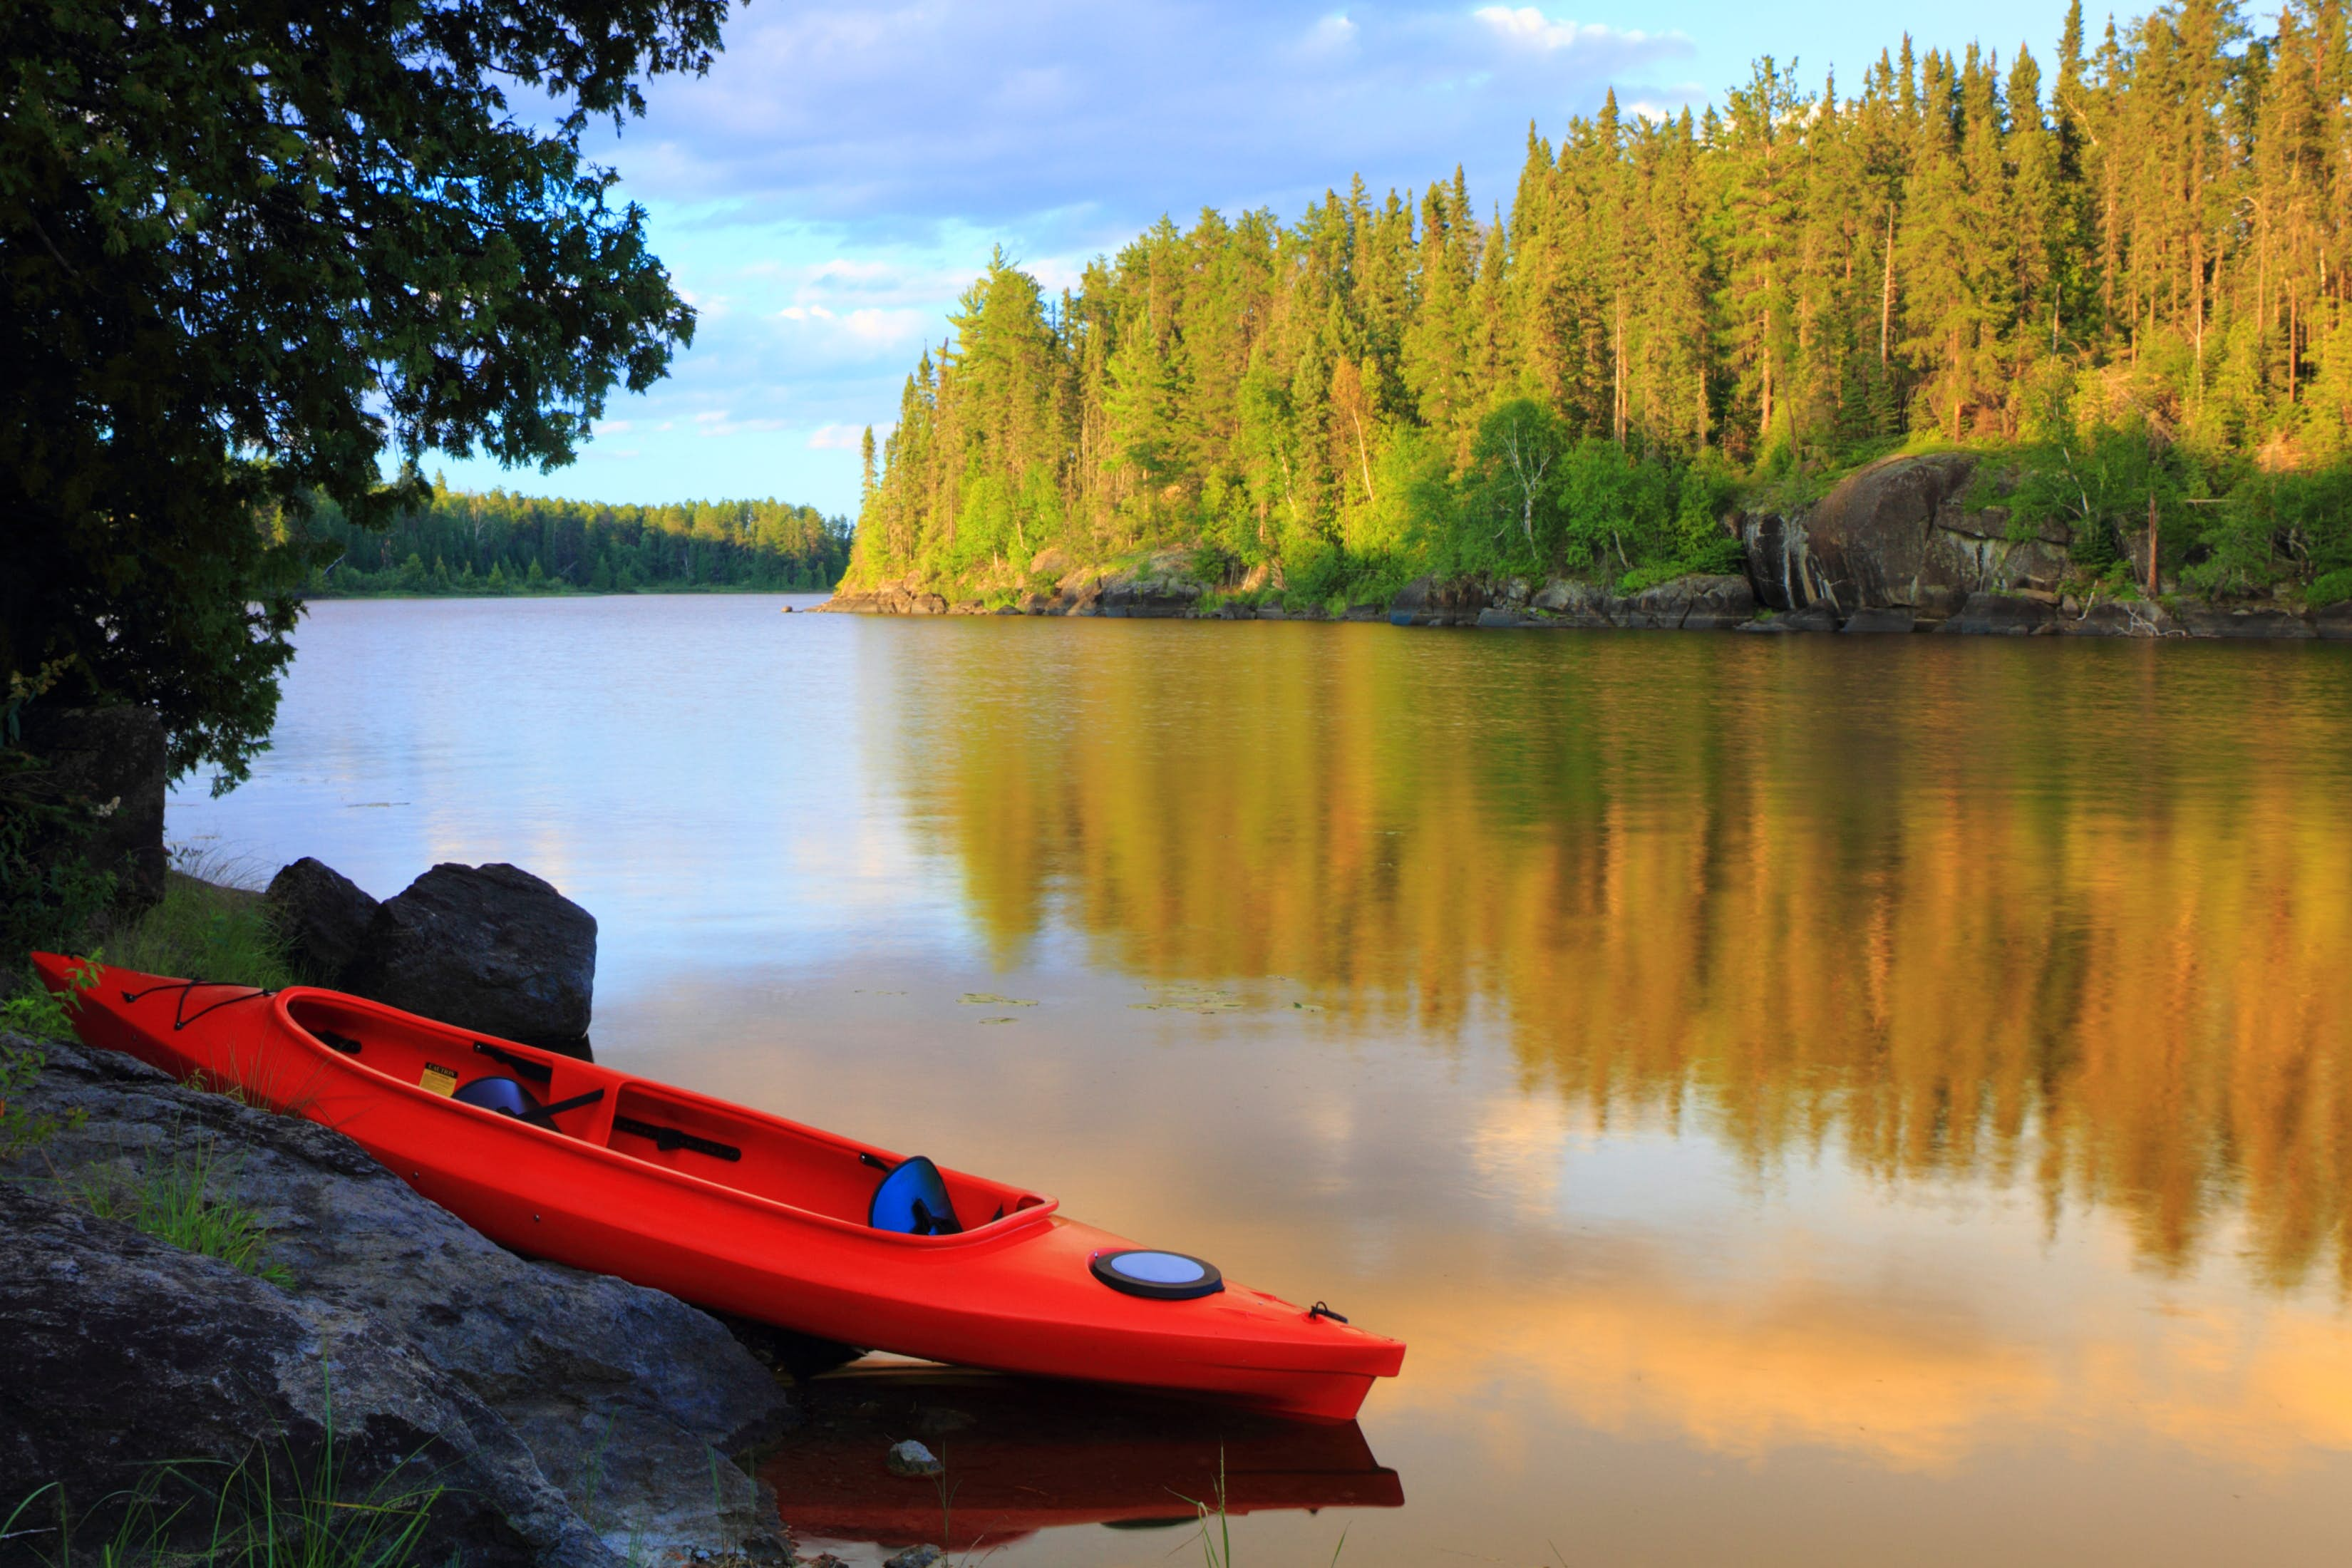 Red canoe sitting on the rocks by a still body of water in Voyageurs National Park, Minnesota